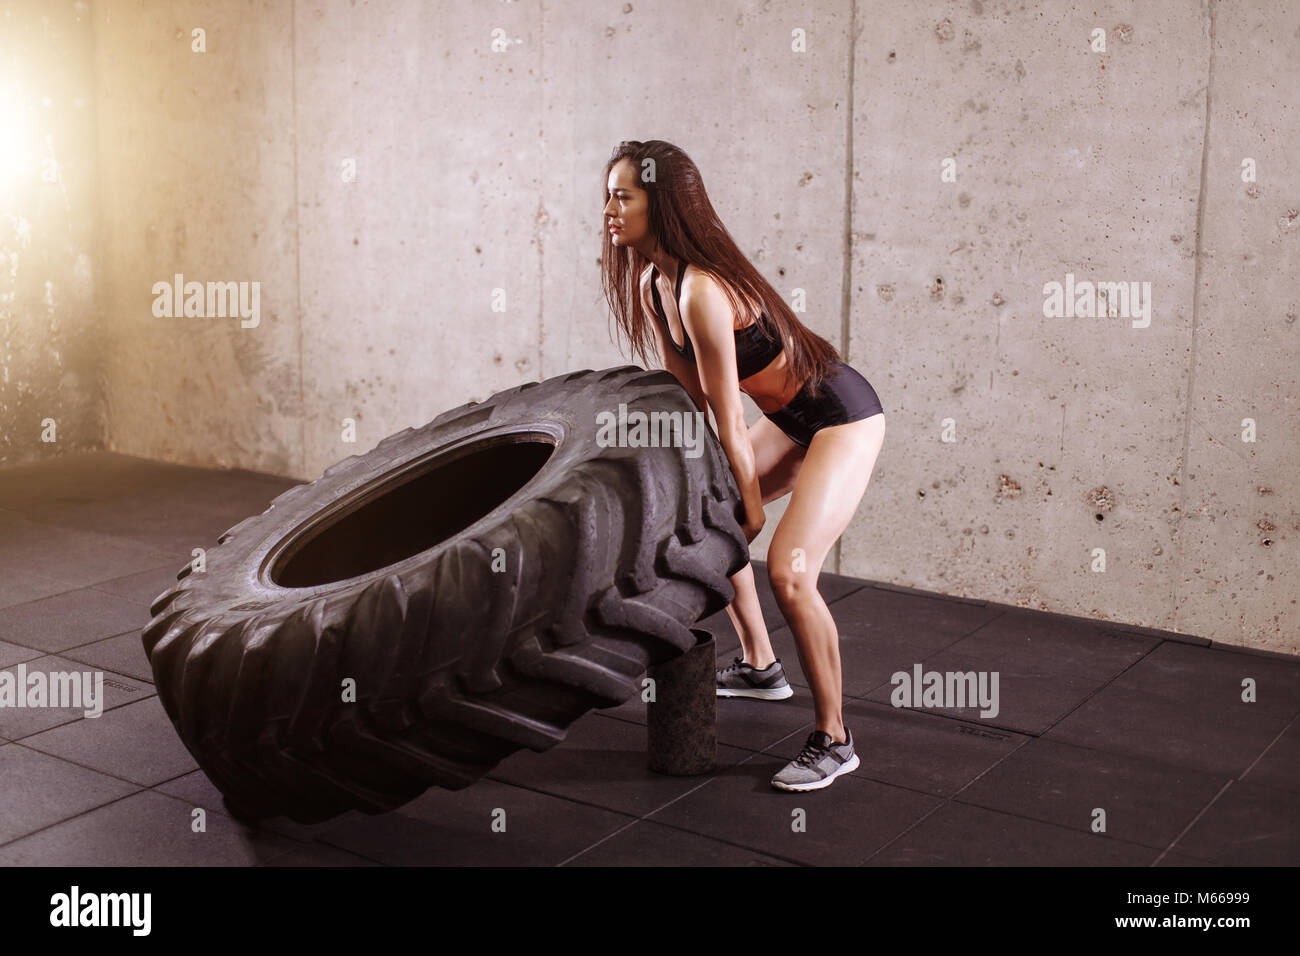 brunette flipping big tire in gym - Stock Image